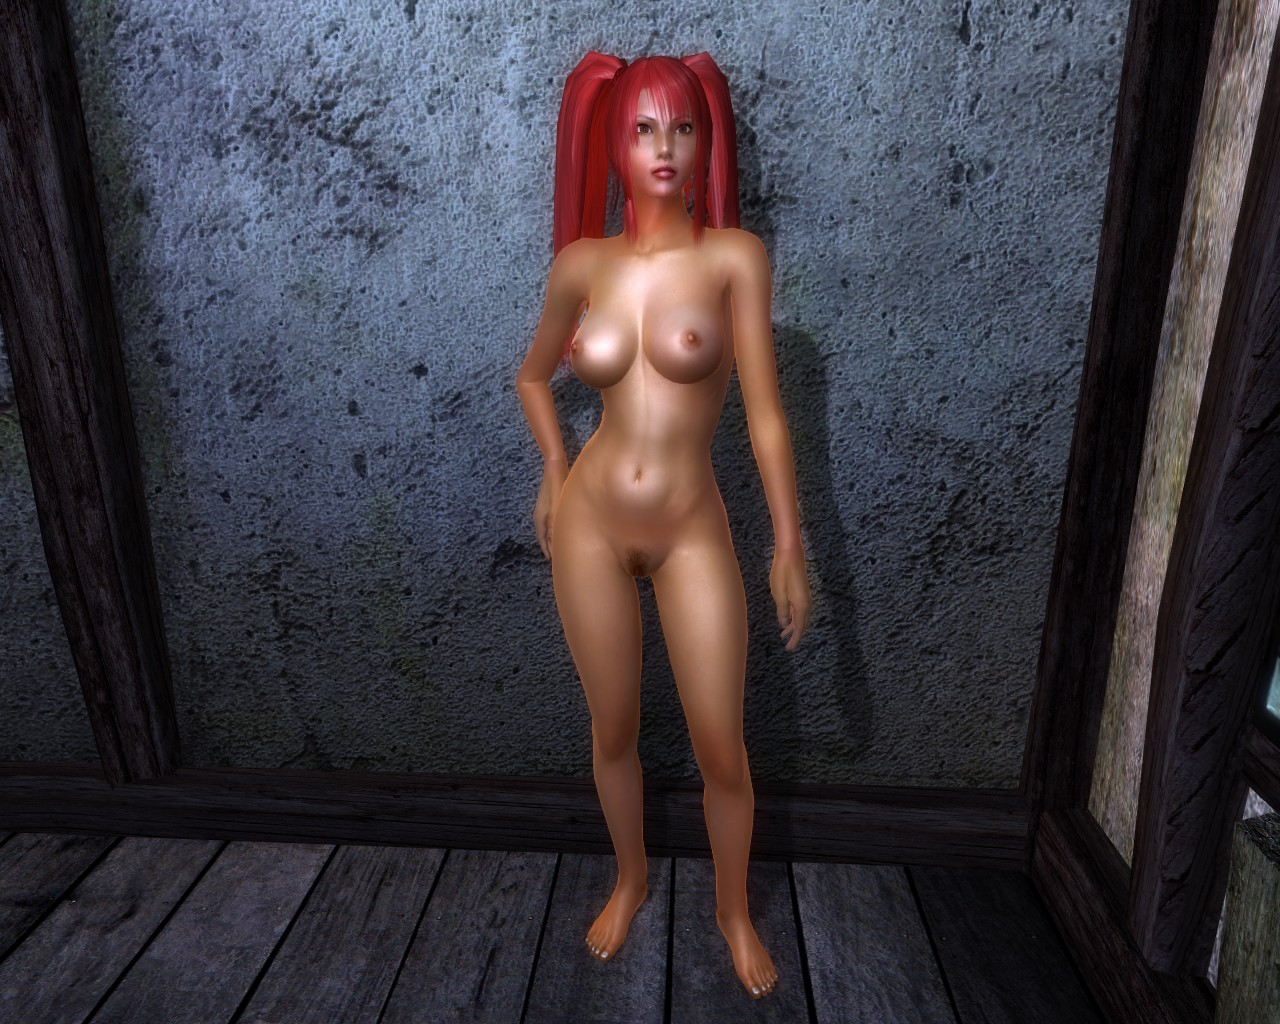 Nude download 3d girls model pics hardcore videos